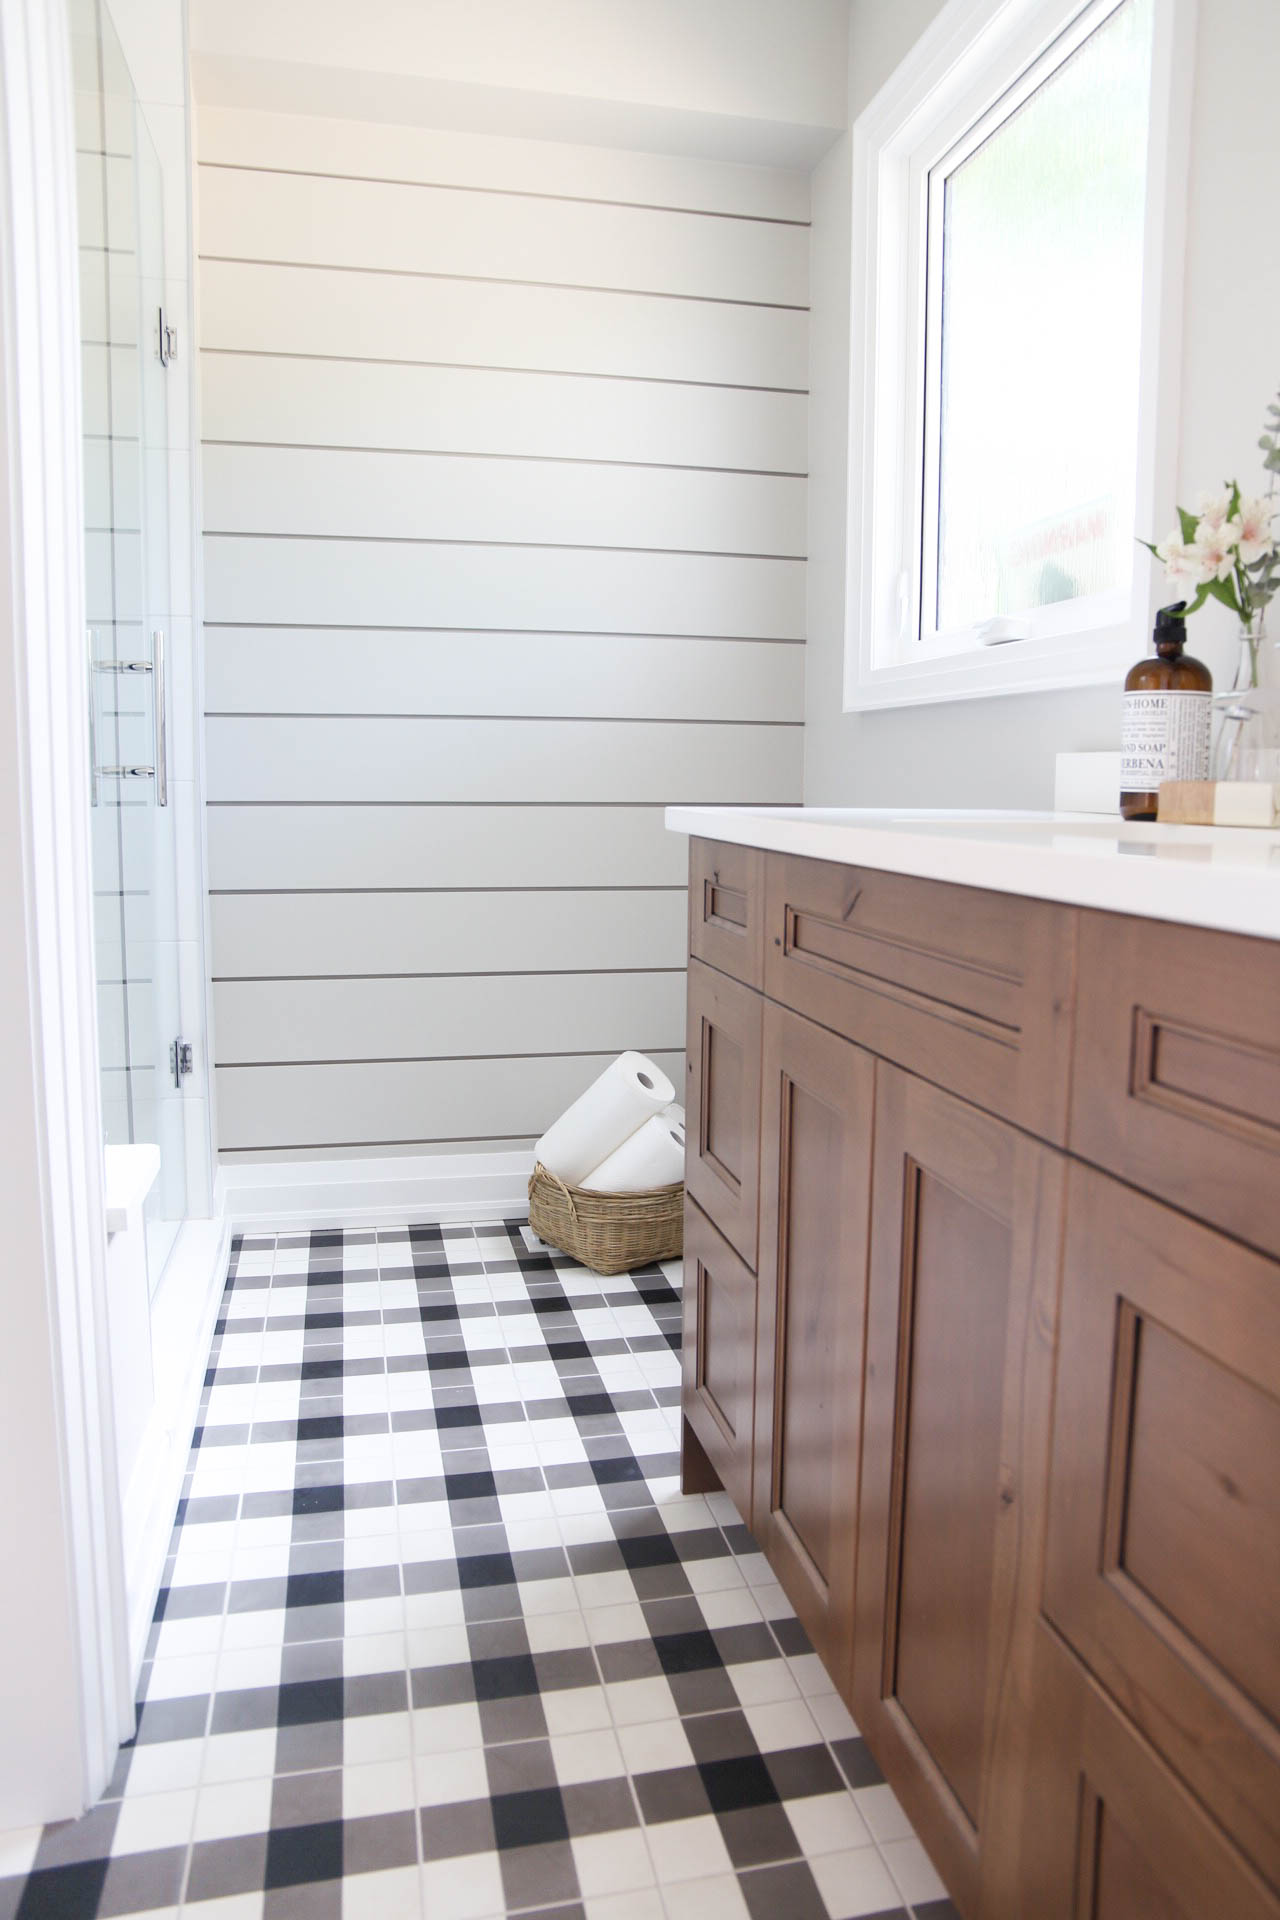 Harper Designs - Modern Bathroom by Jaclyn Harper